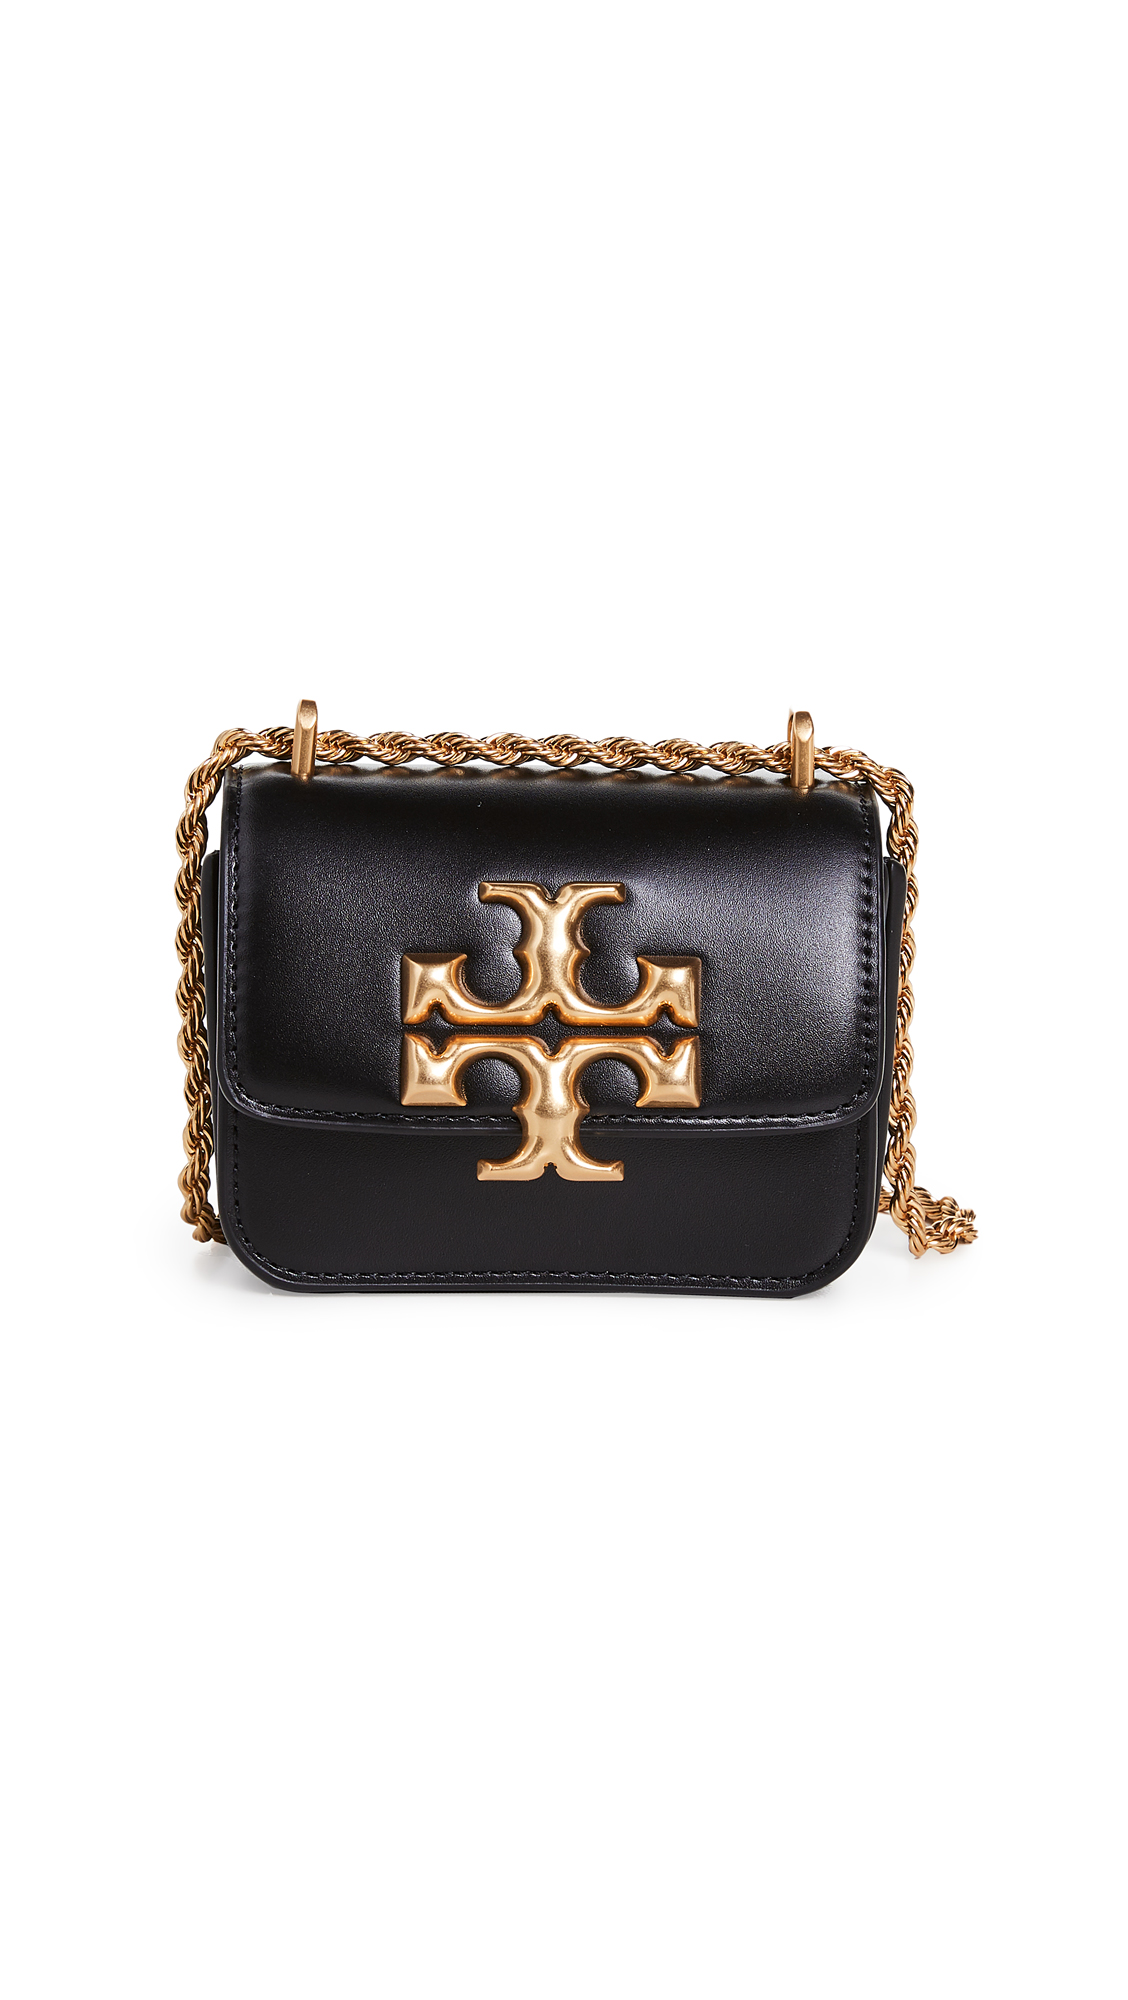 Tory Burch Eleanor Mini Crossbody Bag